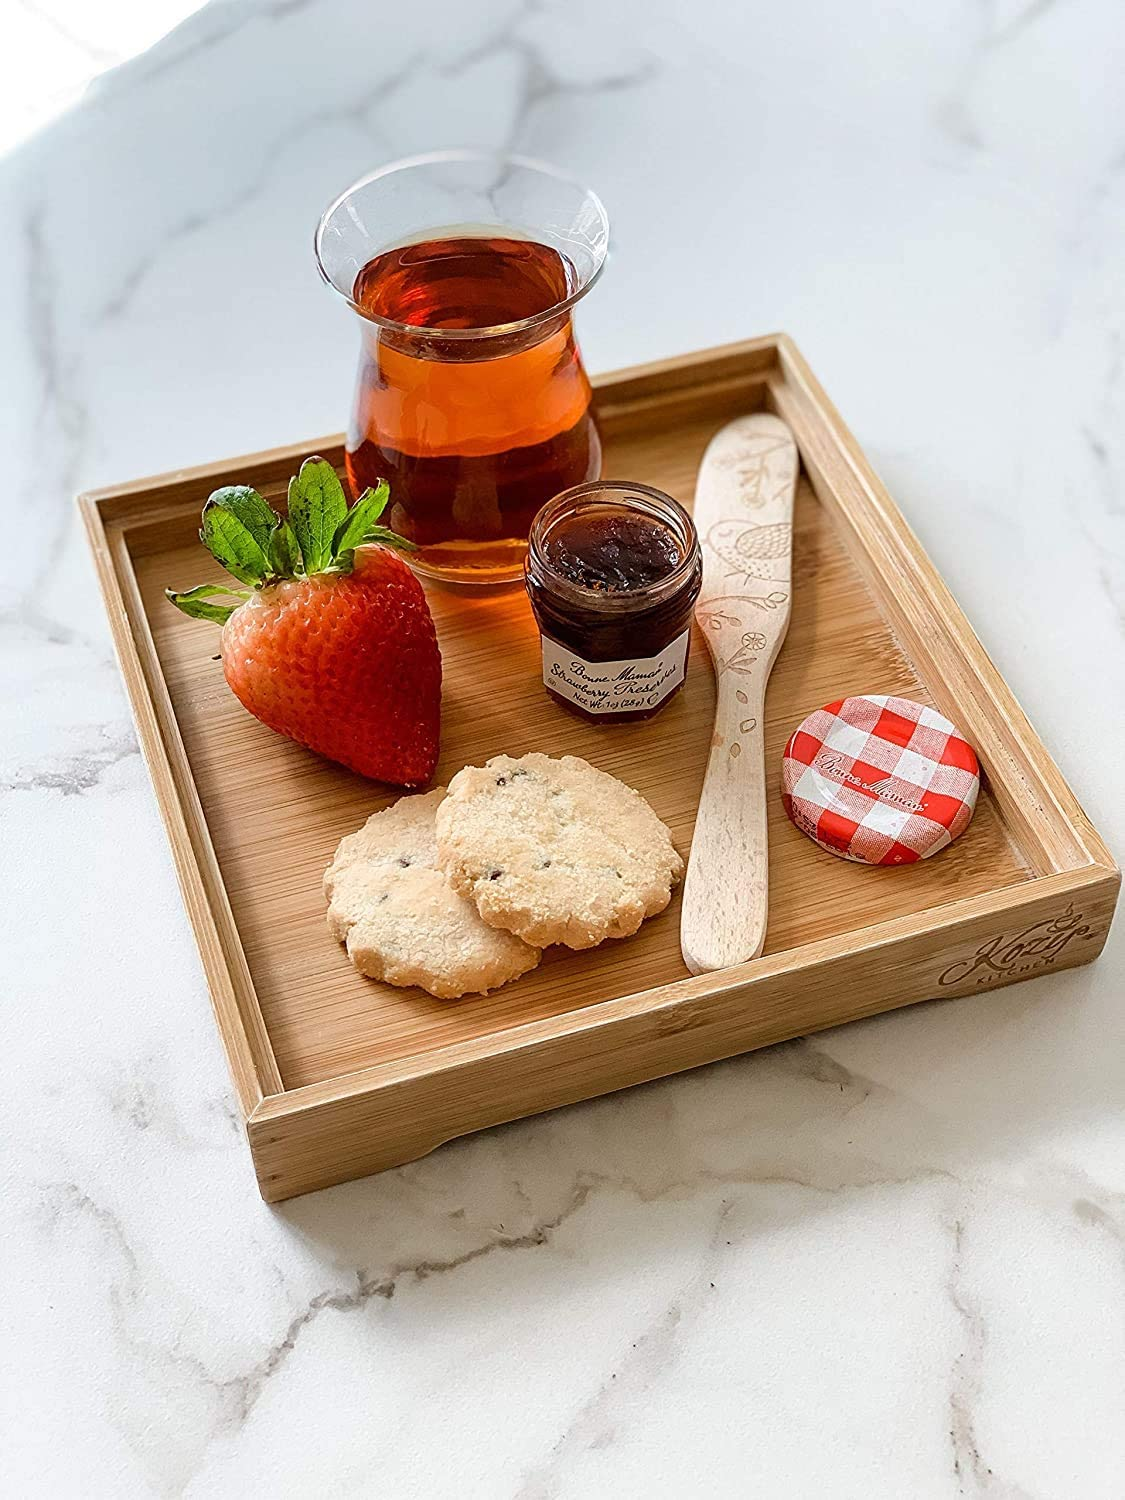 KOZY Tea Serving Complete Free Shipping Tray 100% Organic Wood - Hand-mad Bamboo Finish Portland Mall